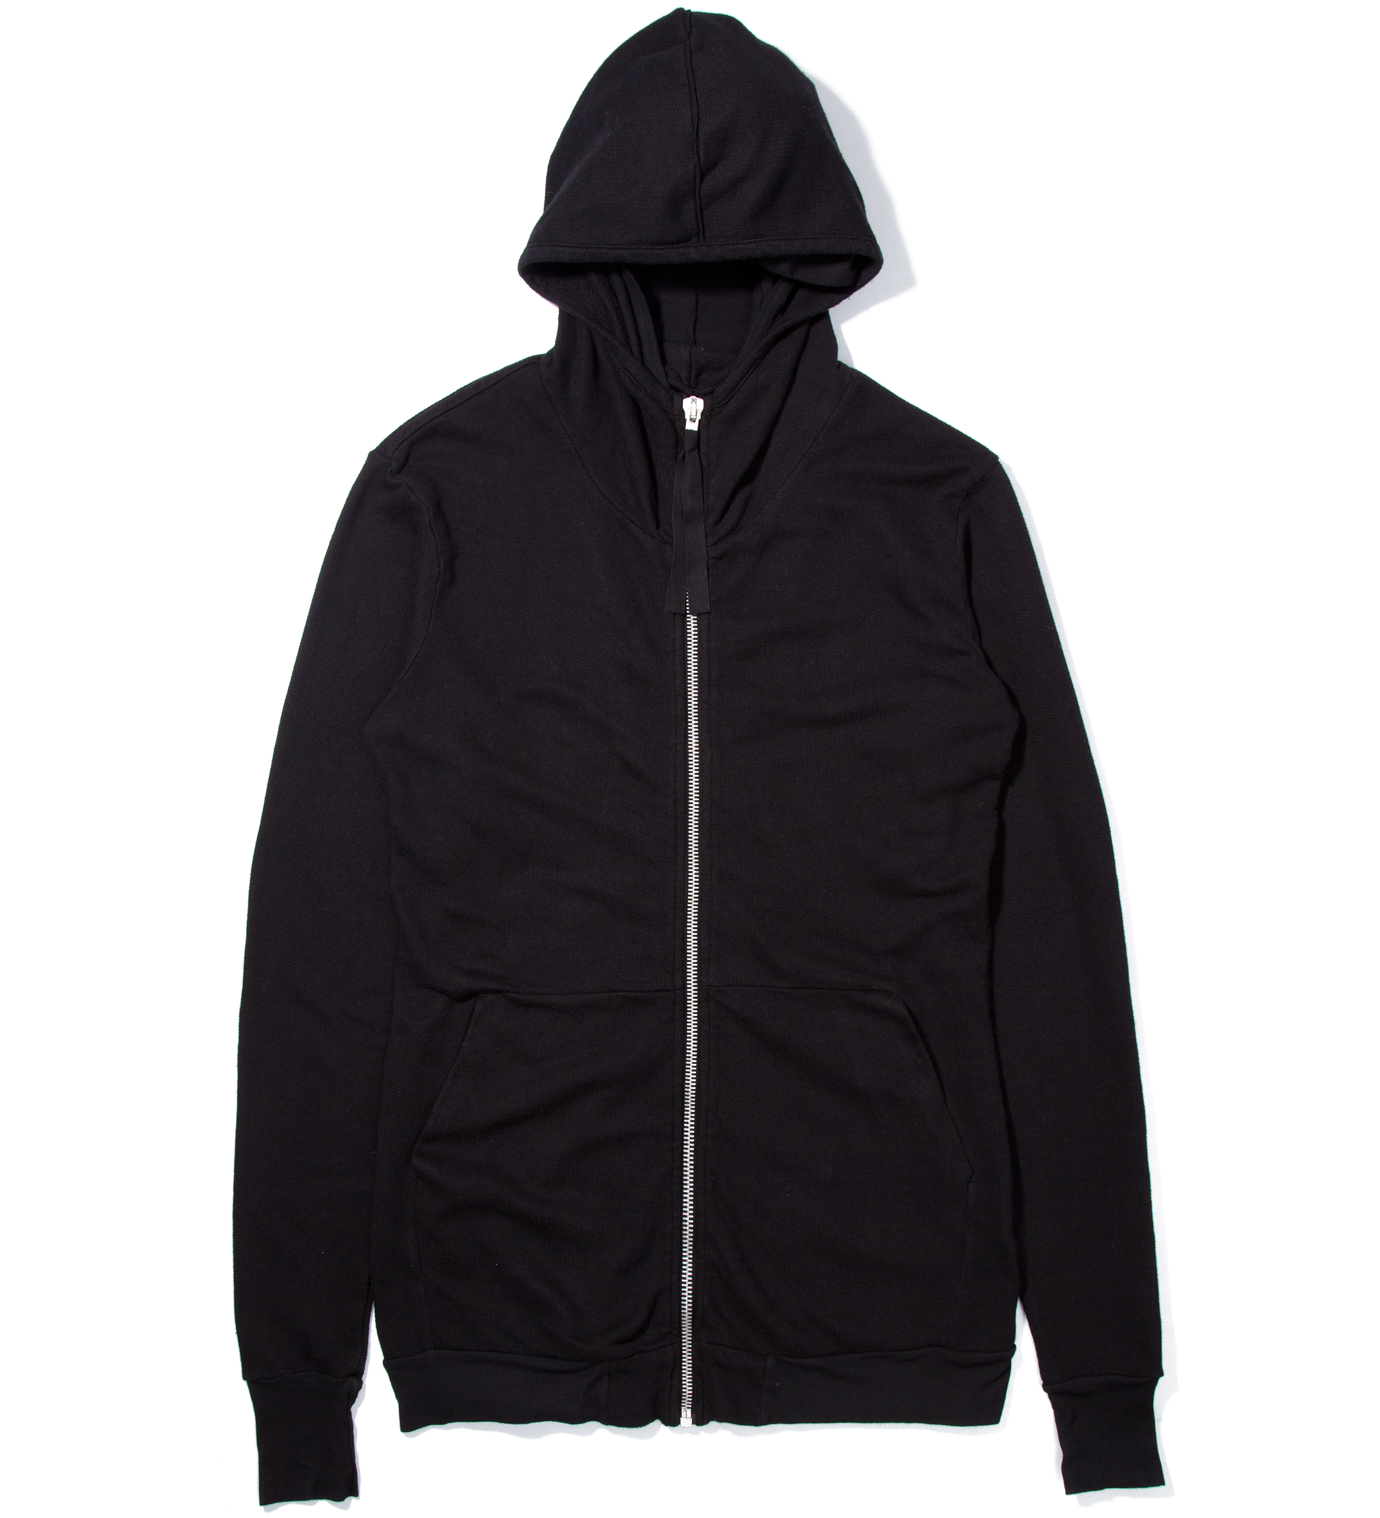 SILENT DAMIR DOMA Black Tribal Basic Zip Hoody